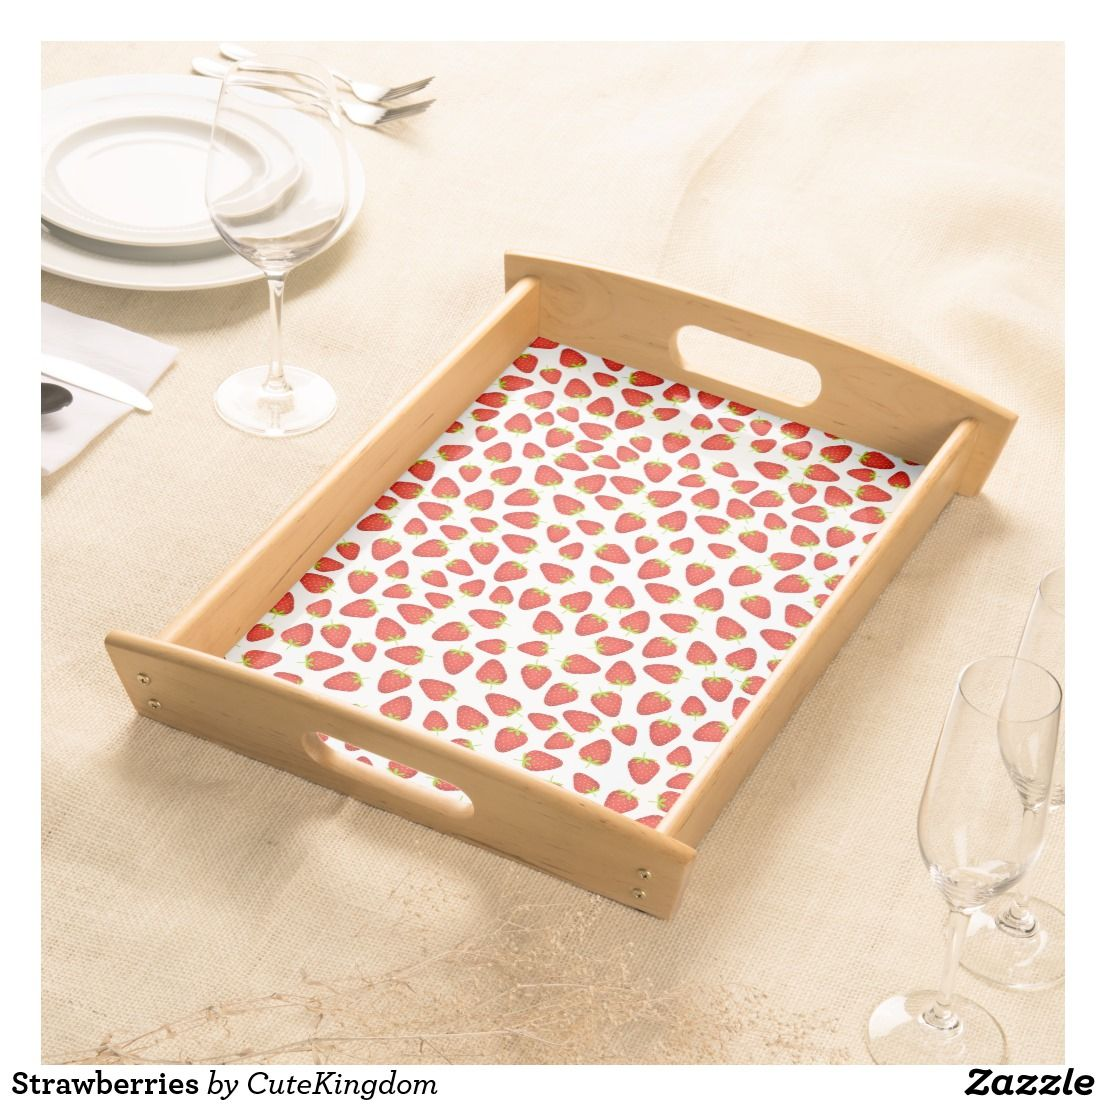 Strawberries Serving Tray Zazzle.co.uk Serving tray